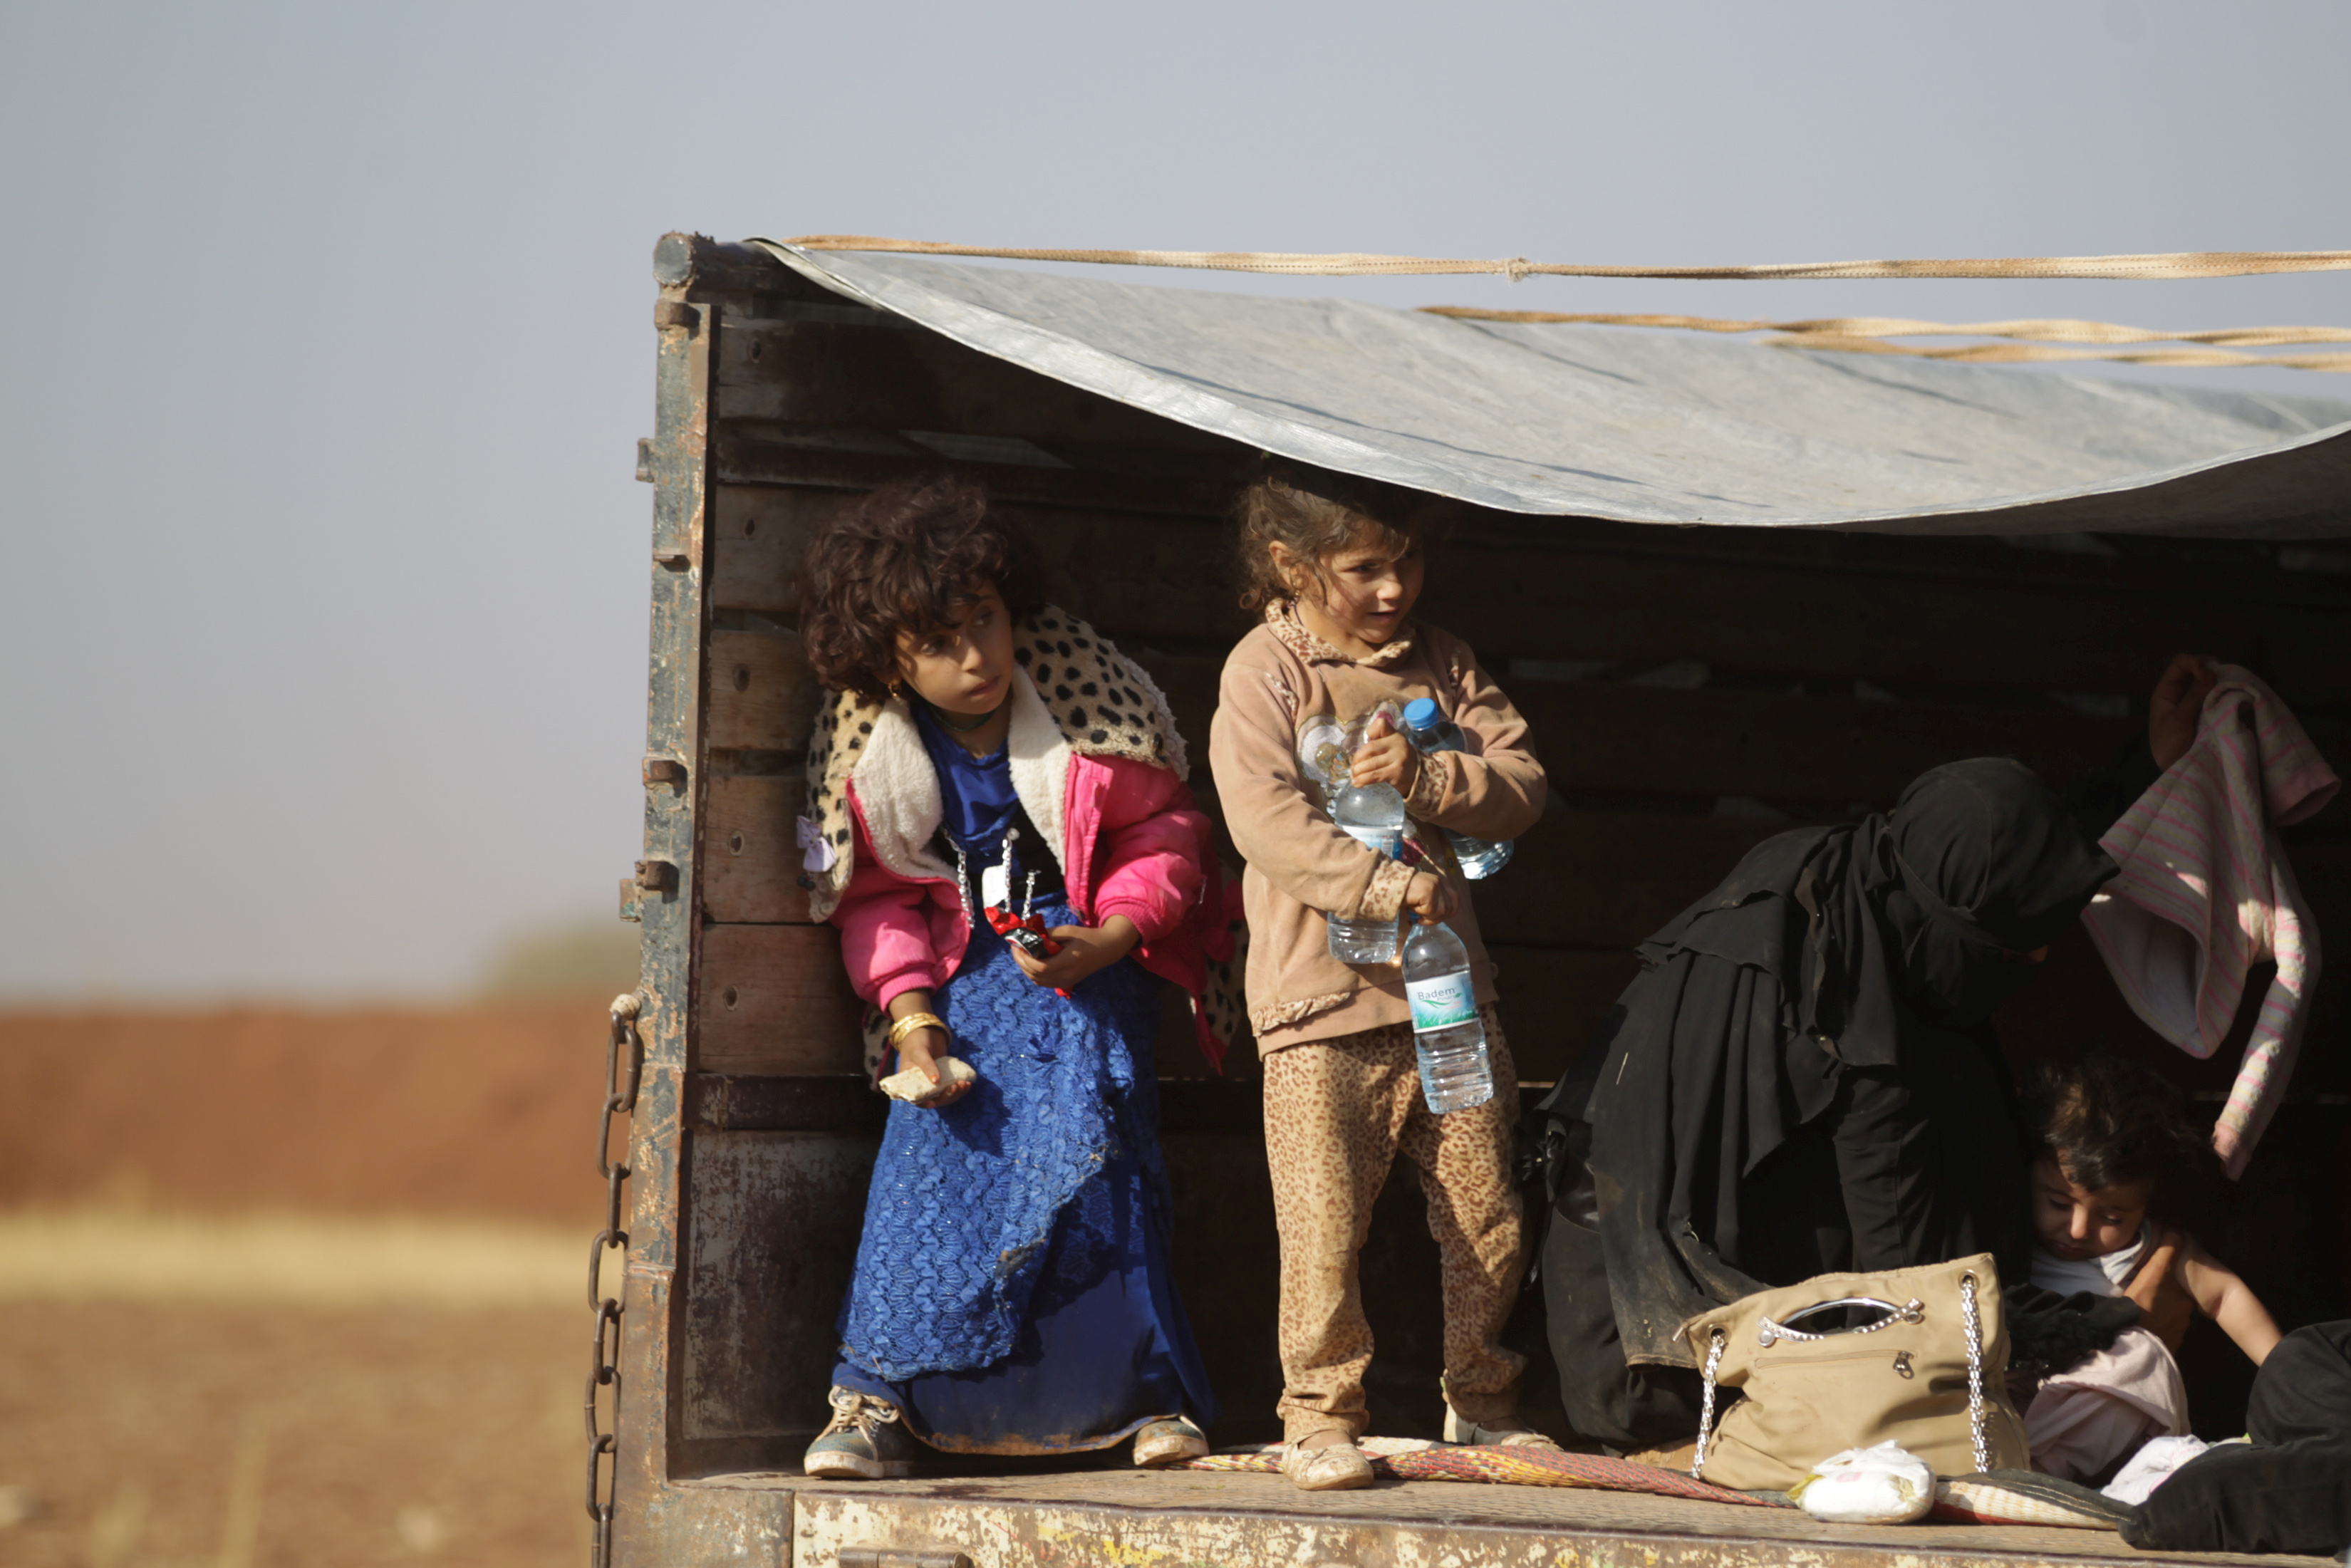 Iraqi refugees that fled violence in Mosul ride a pick-up truck upon arrival in al-Kherbeh village, in Syria's northern Aleppo province.